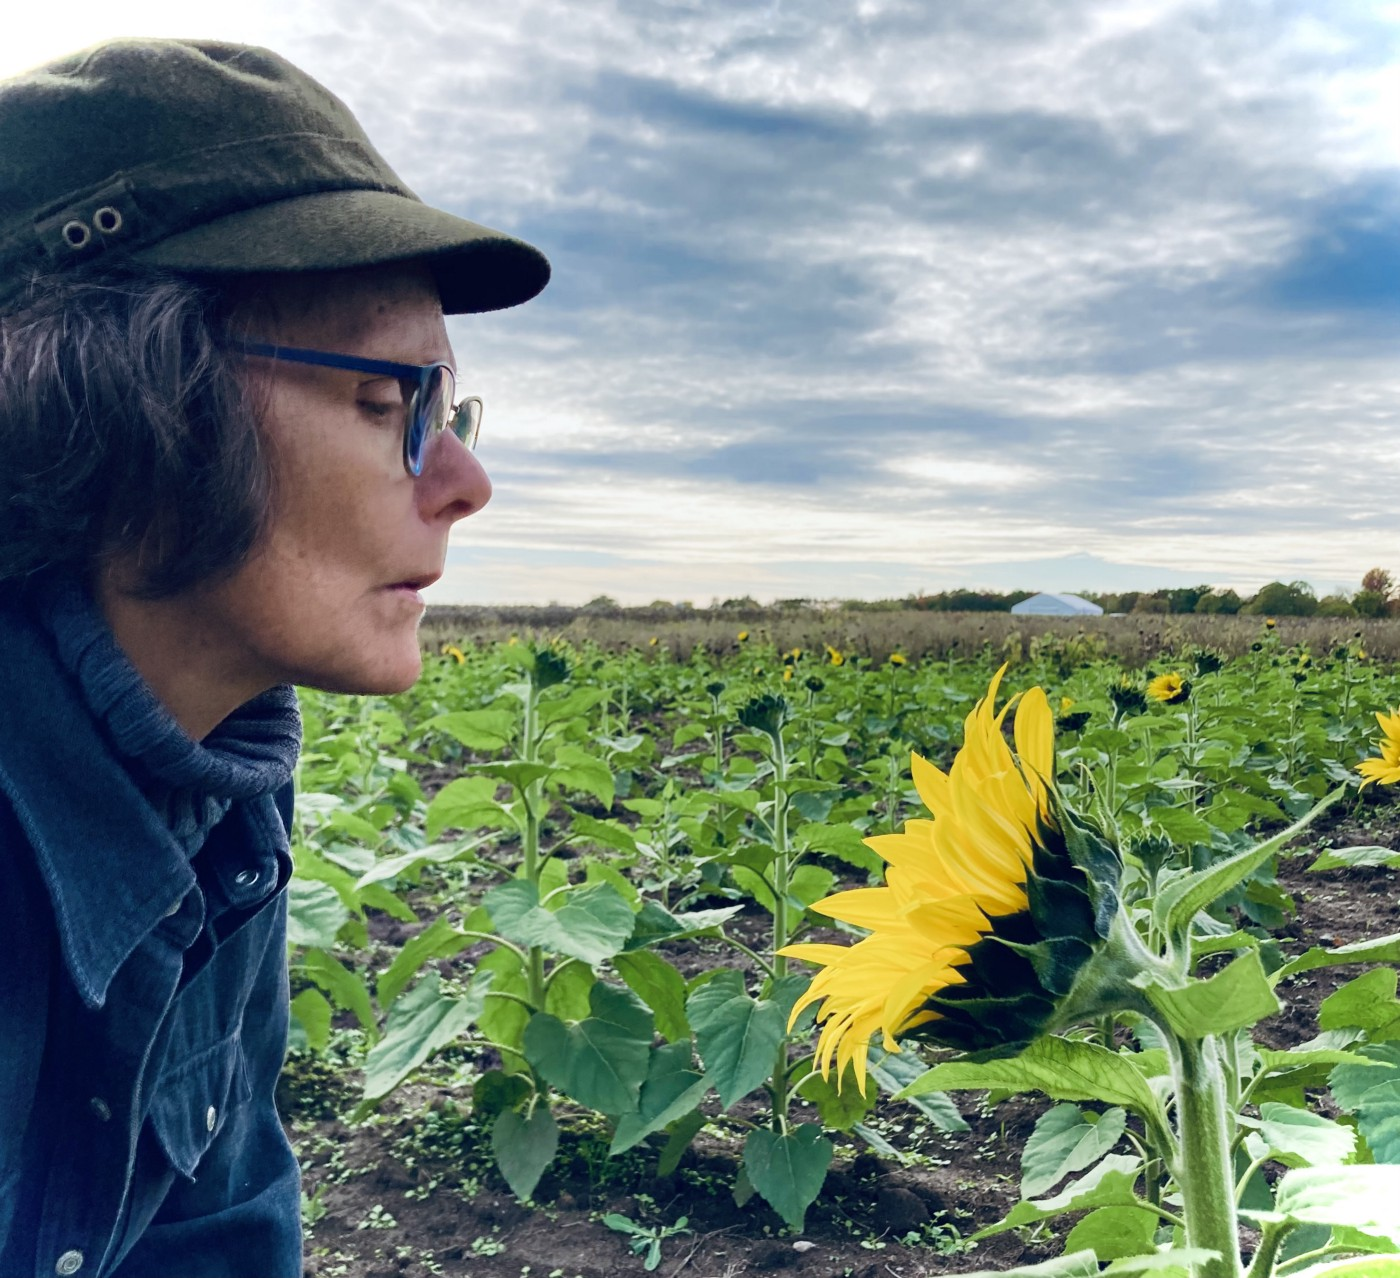 Woman with listening to a sunflower in the field